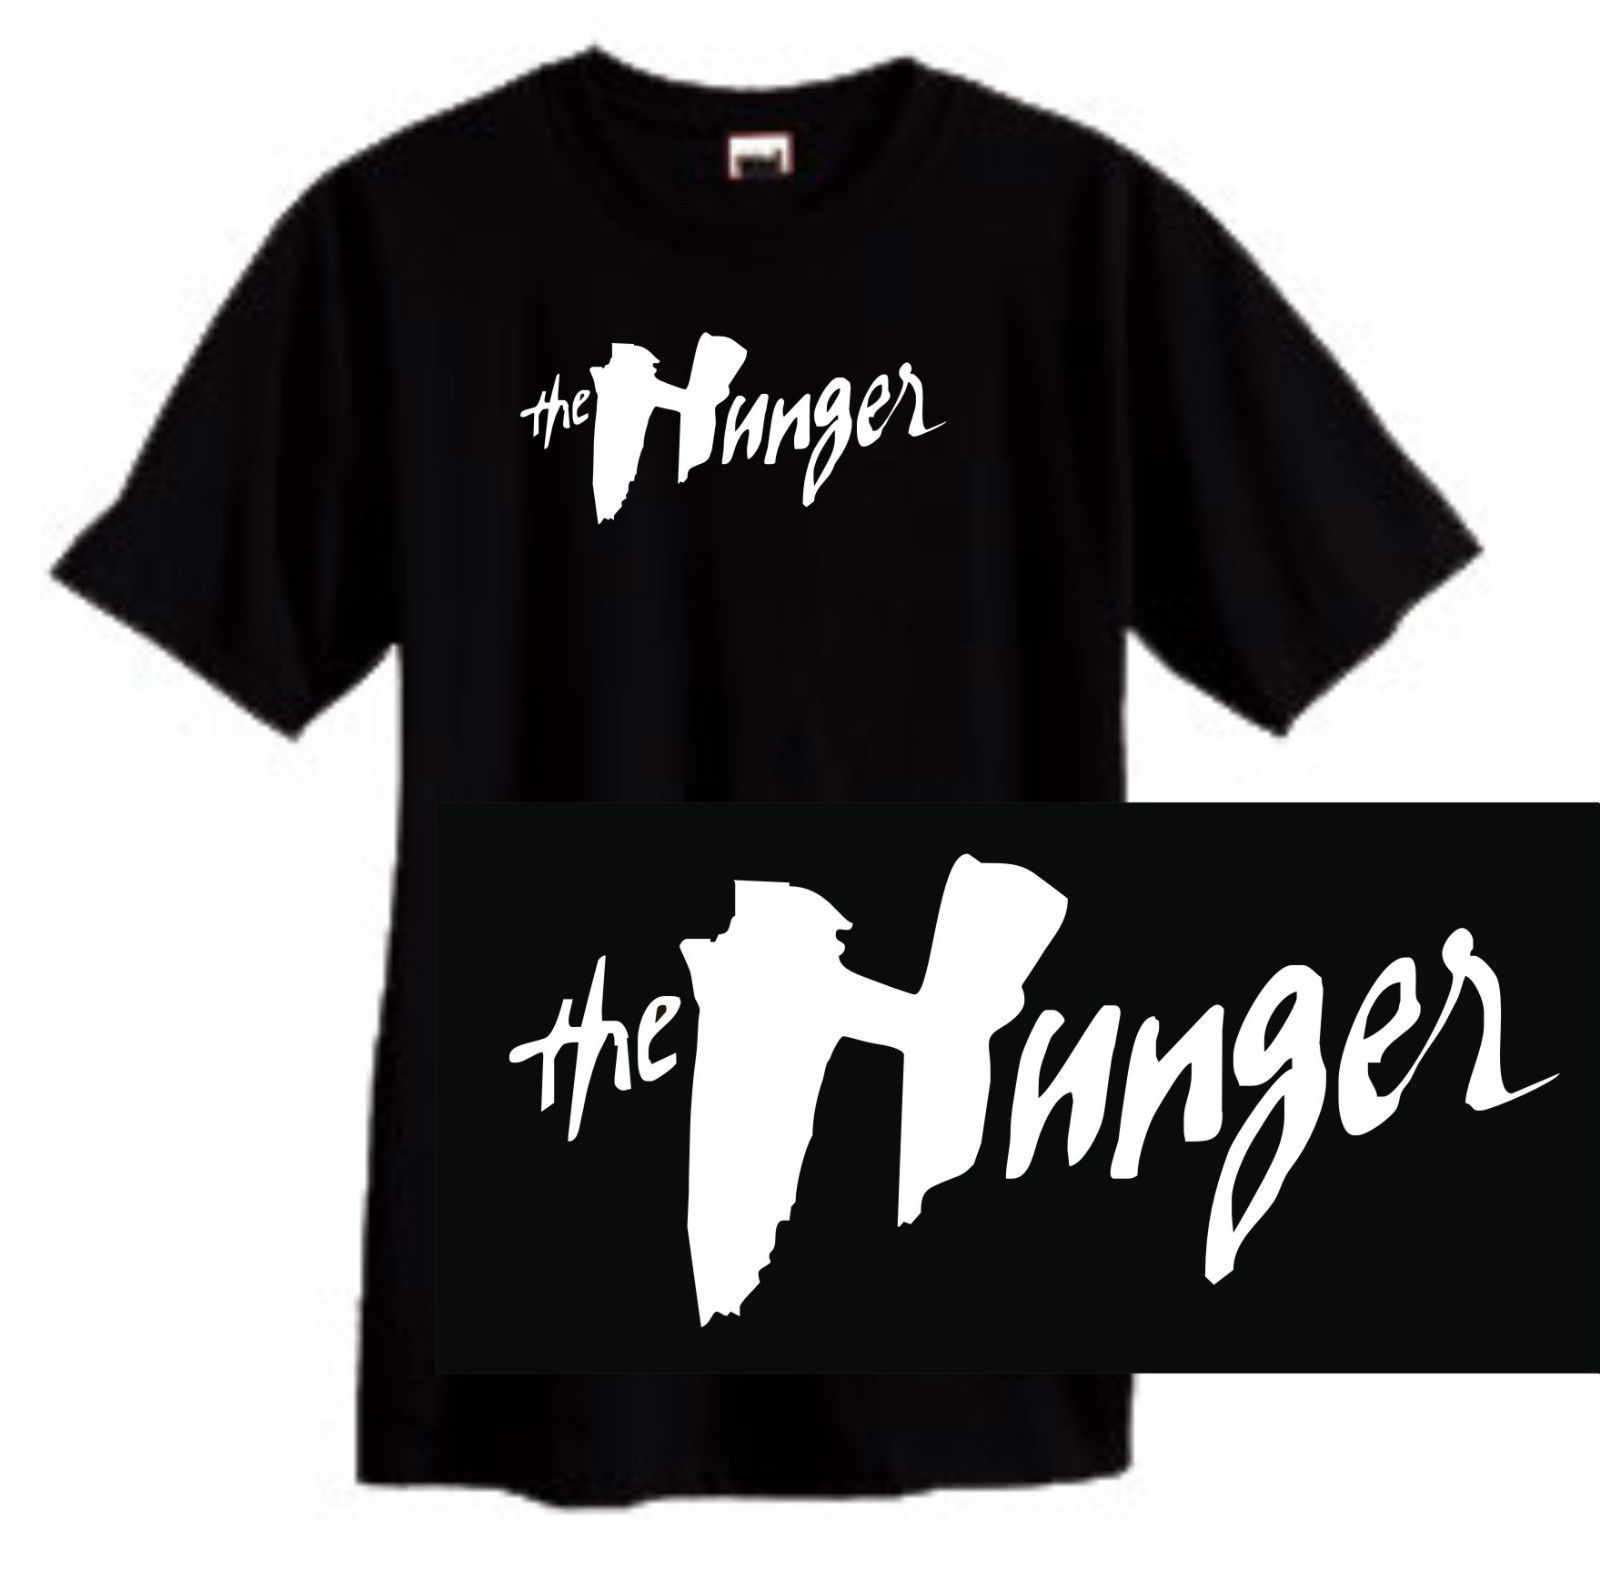 The Hunger movie T-shirt gothic black cotton graphic printed tee vampire 80's